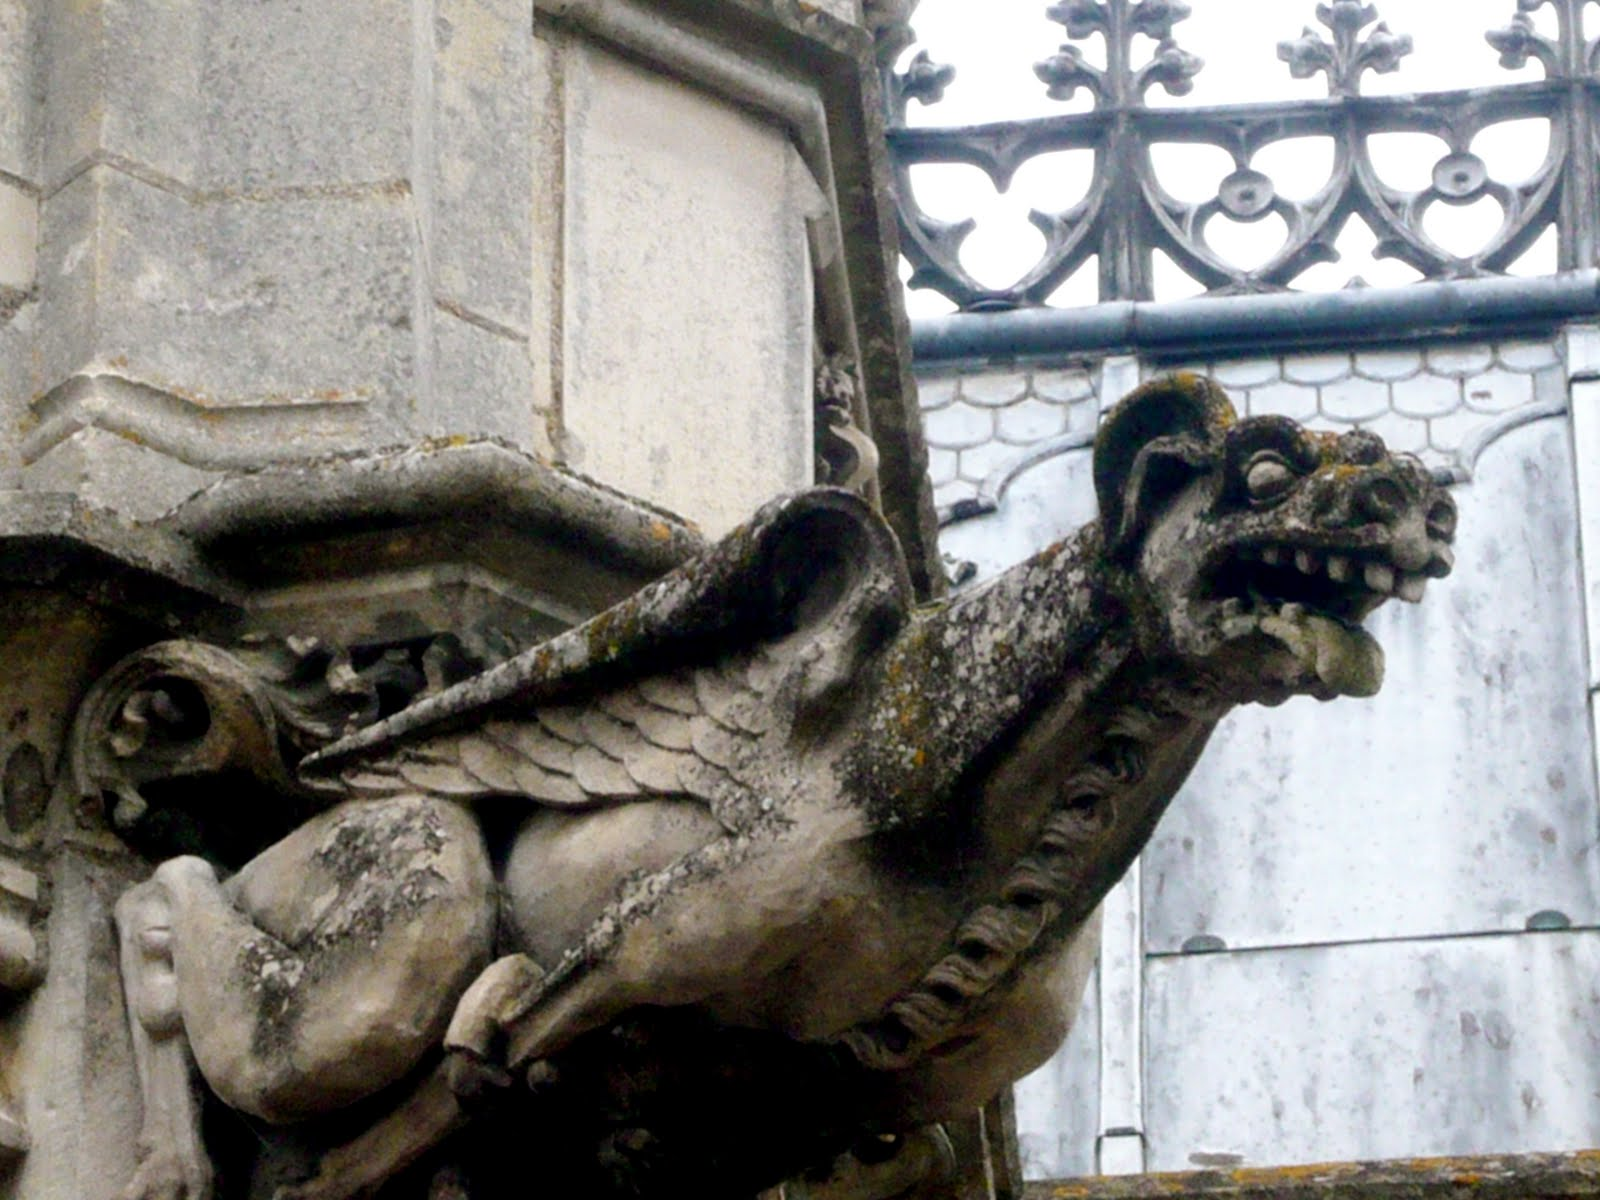 The Grotesque When I First Studied Gothic Architecture